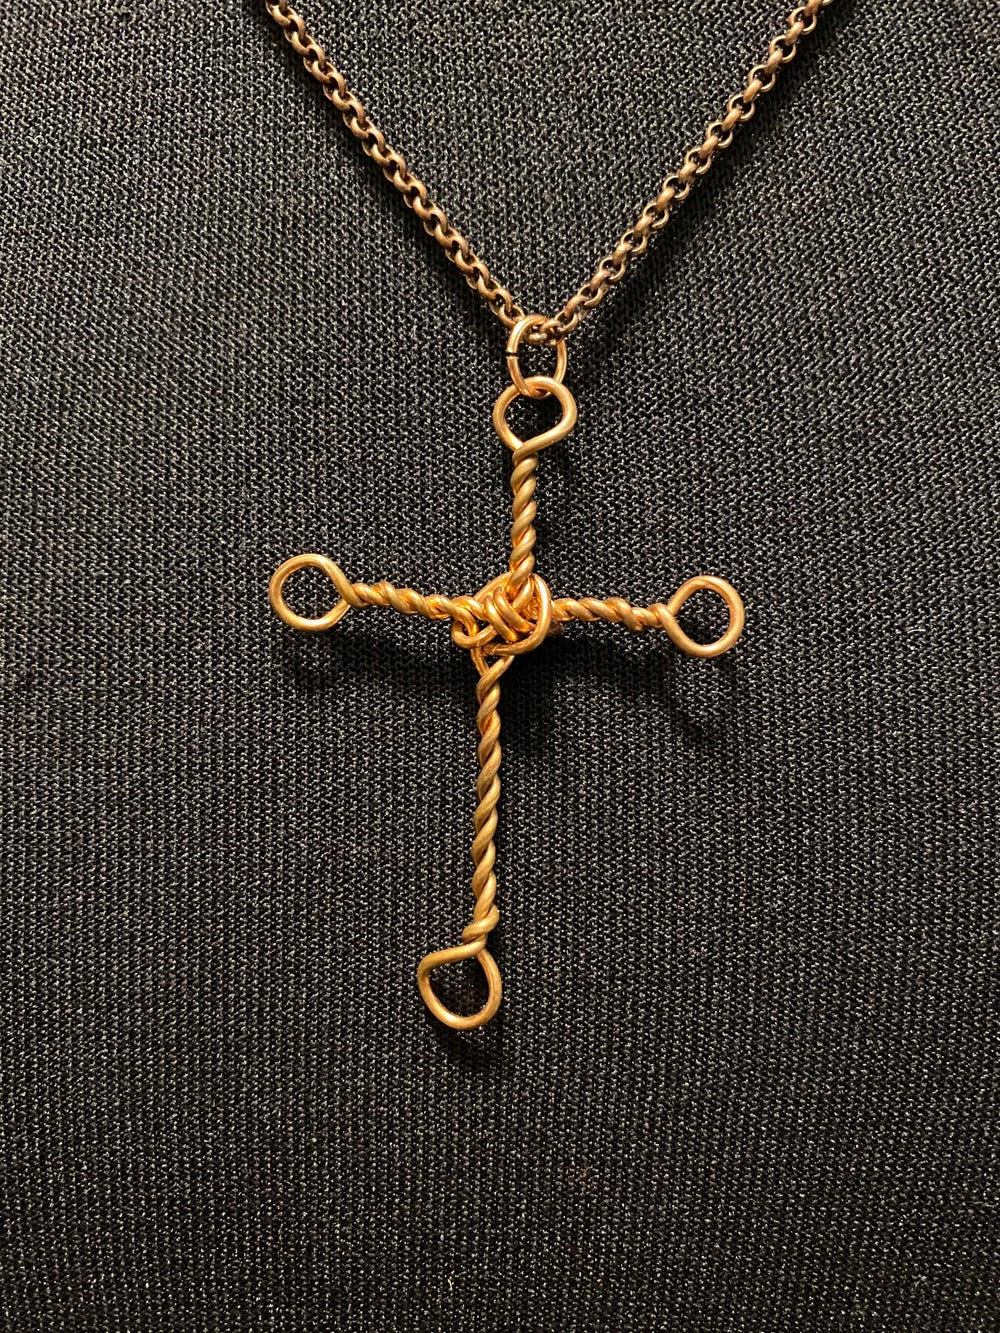 Copper Cross and Chain Necklace